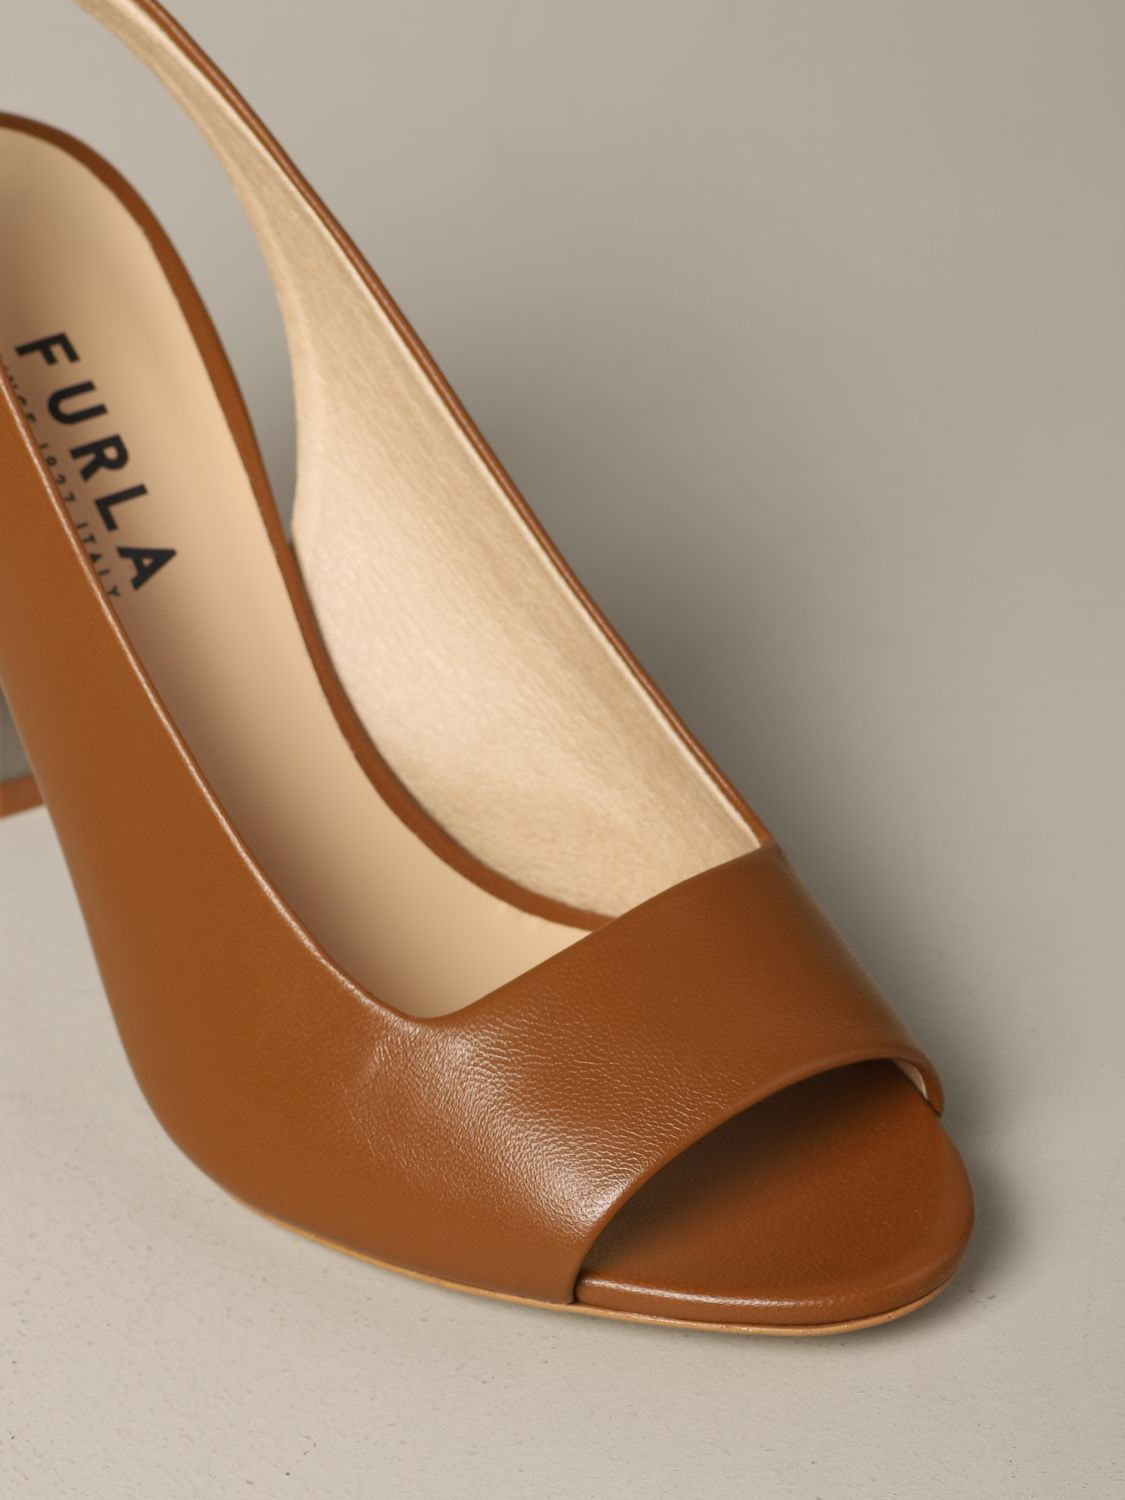 Slingback Yc74 Fulra in nappa leather brown 4